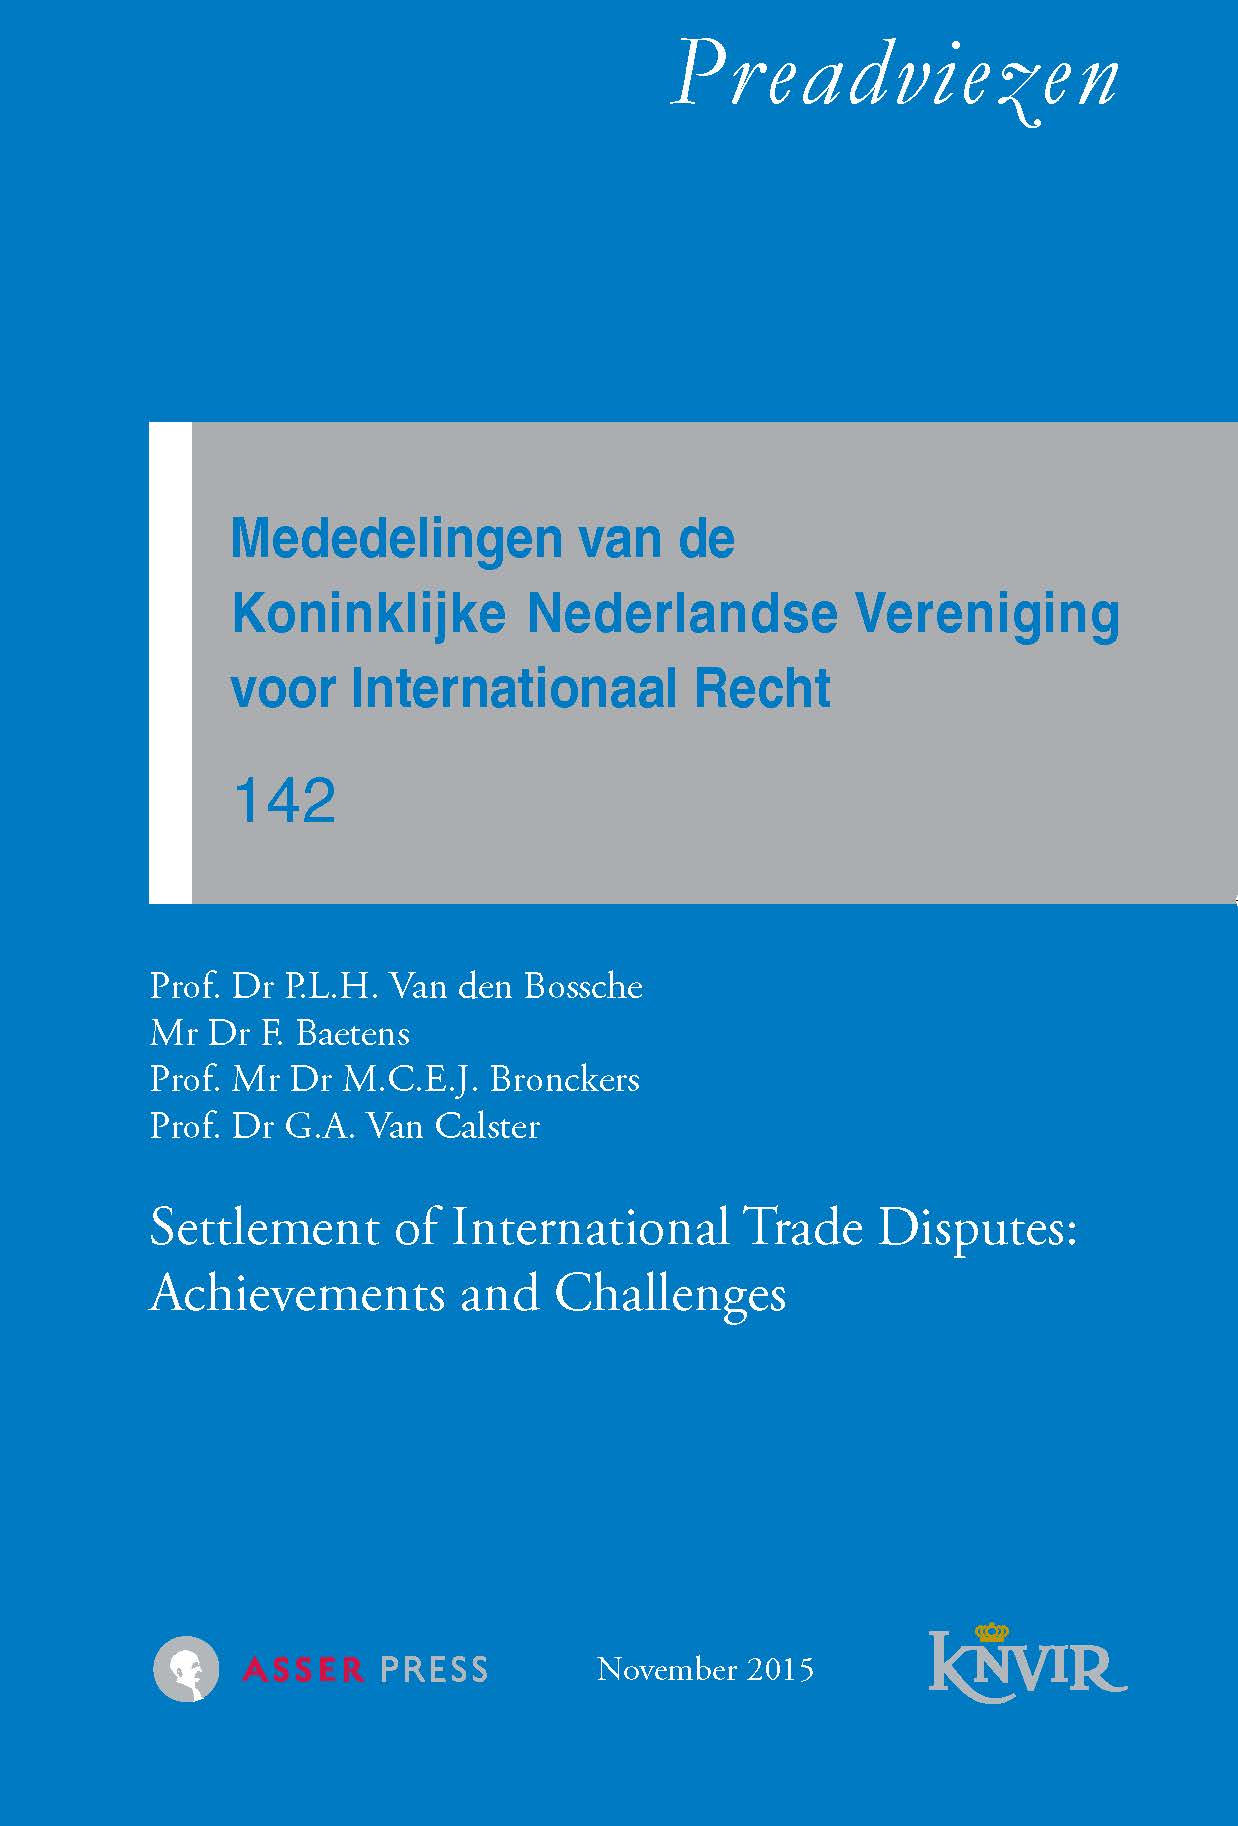 Mededelingen van de Koninklijke Nederlandse Vereniging voor Internationaal Recht – Nr. 142 - Settlement of International Trade Disputes: Achievements and Challenges